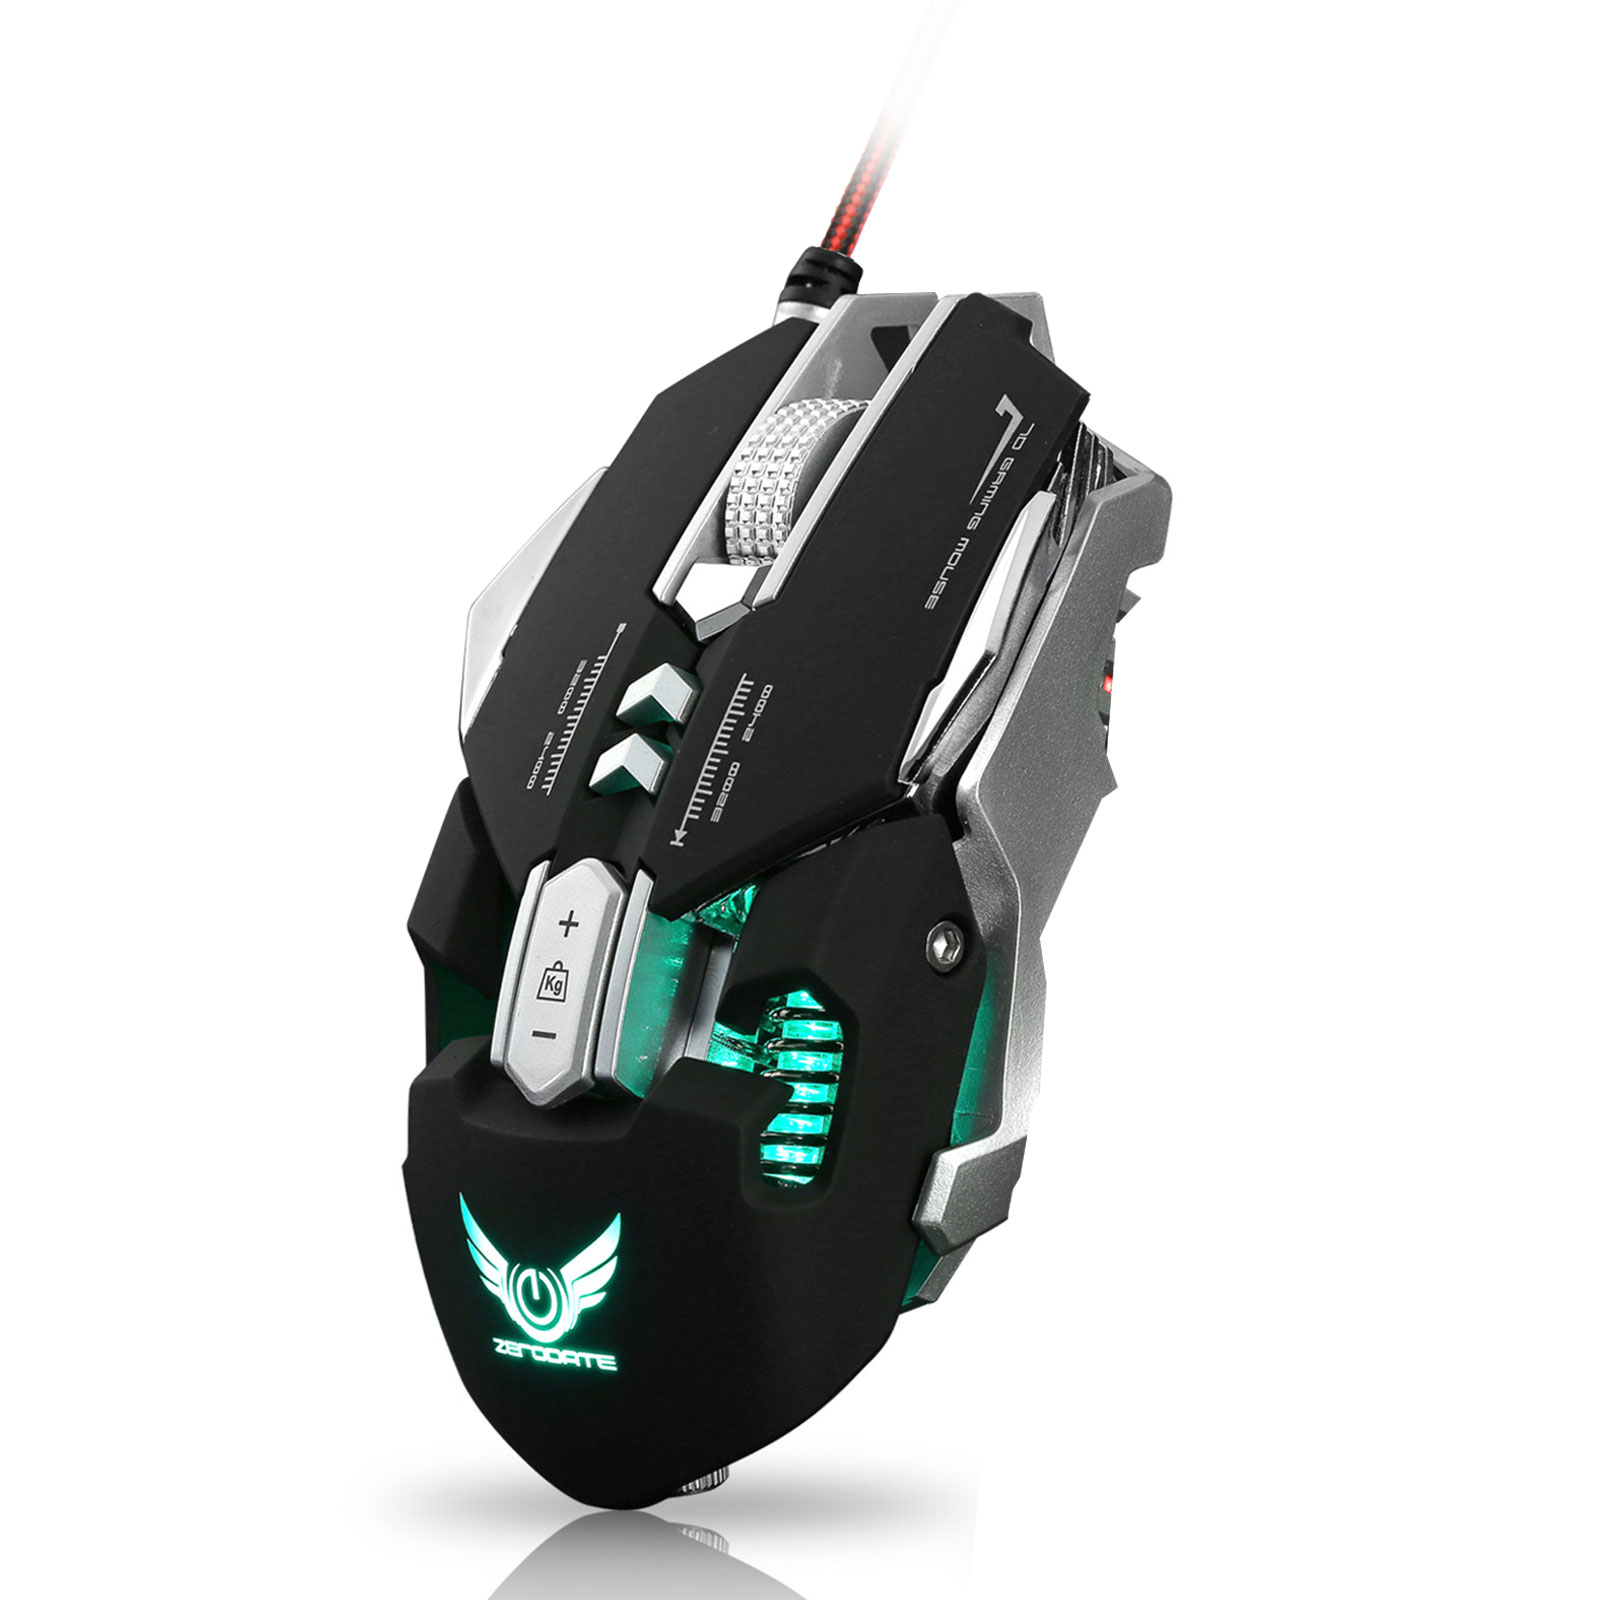 Wired Gaming Mouse, TSV X300 RGB Mechanical Gaming Mouse with LED Lighting Wired USB Gaming Mice 7 Buttons 4000 DPI Optical Gaming Sensor